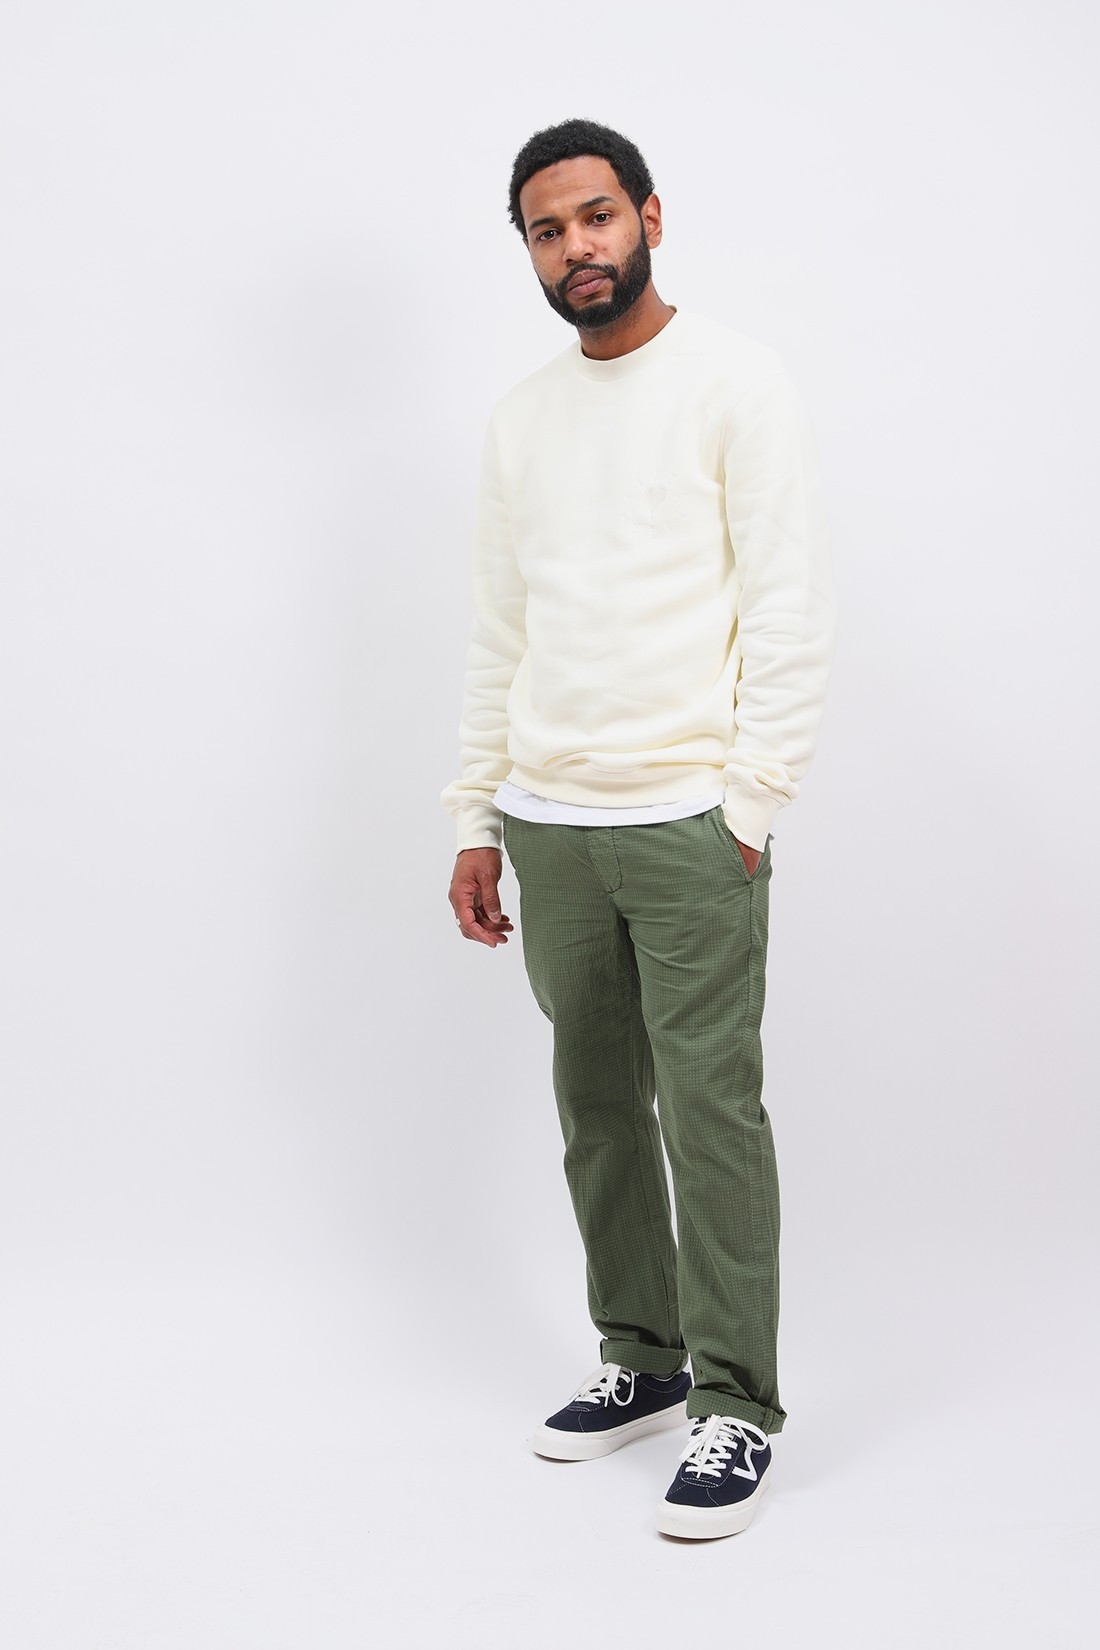 HOMECORE / Draw light pant ripstop Army green